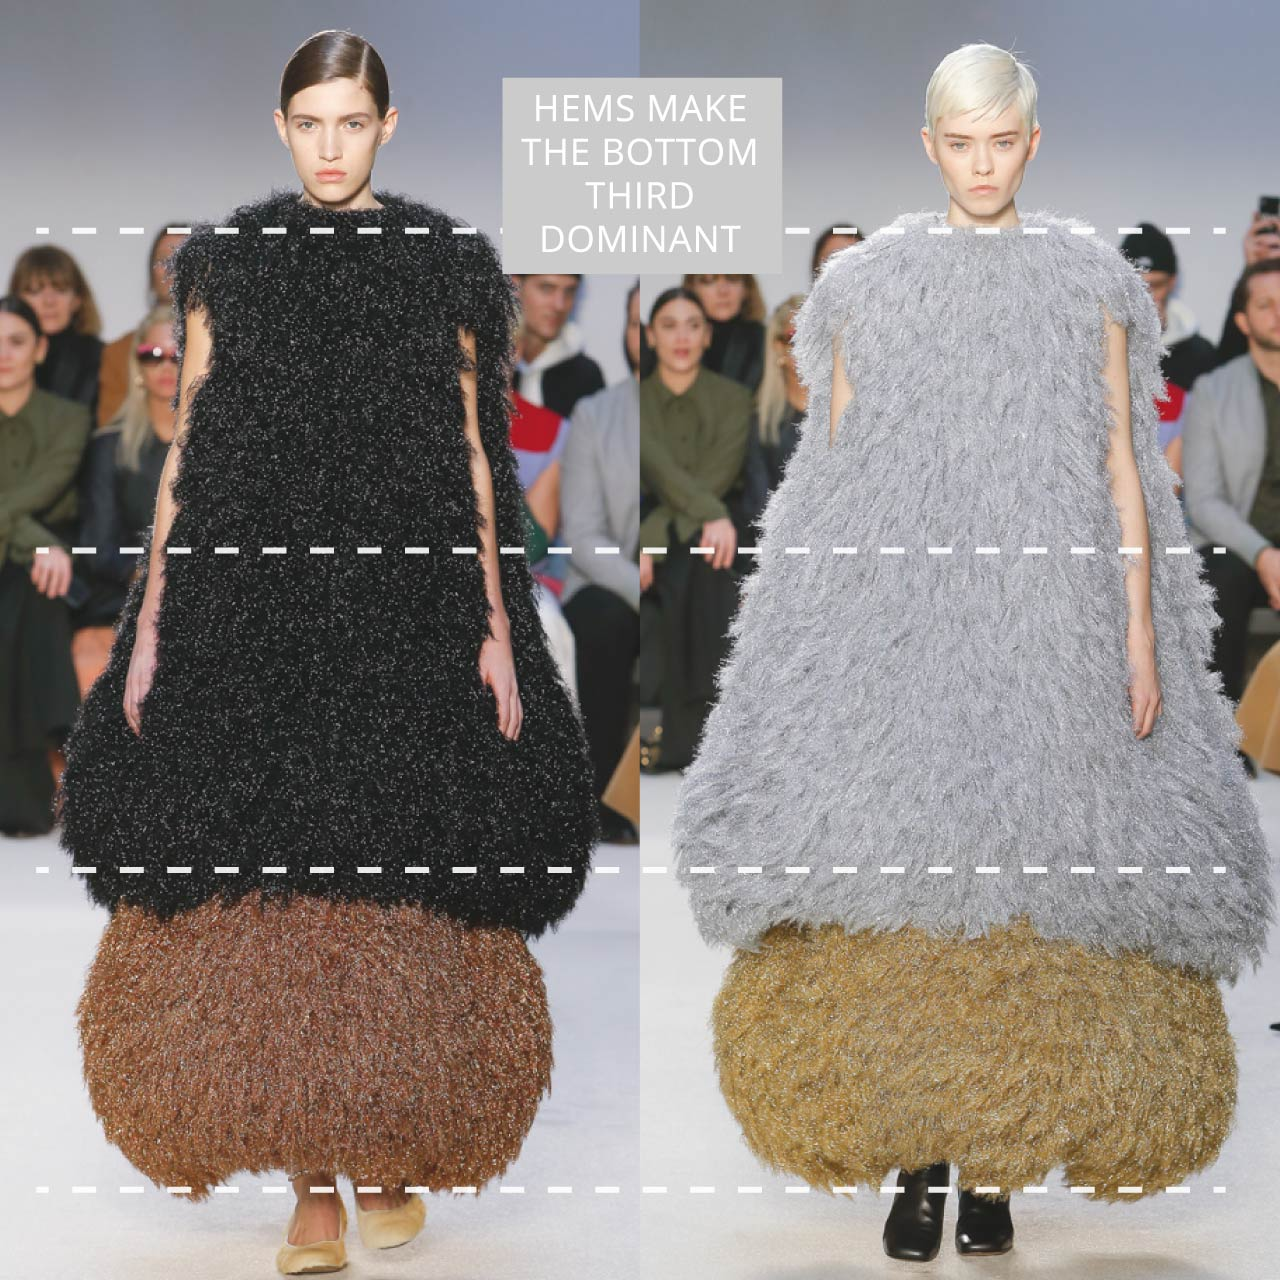 The Rule of Thirds Applied to JW Anderson | The Cutting Class. Hems make the bottom third dominant. AW20.